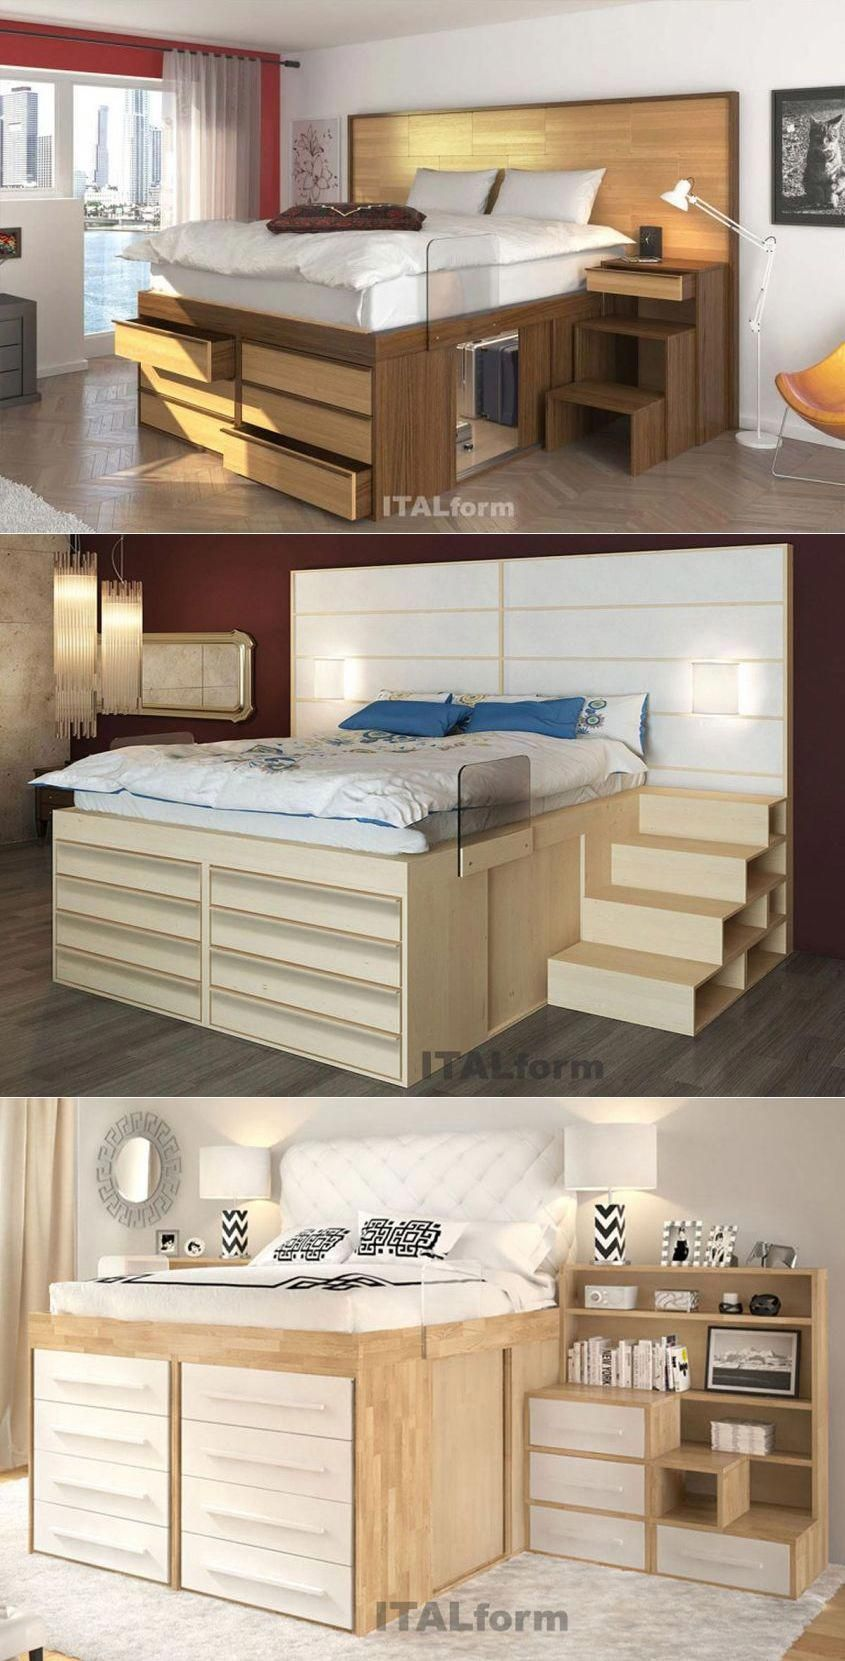 Impero Storage Beds From Italform Design Space Saving Bedroom